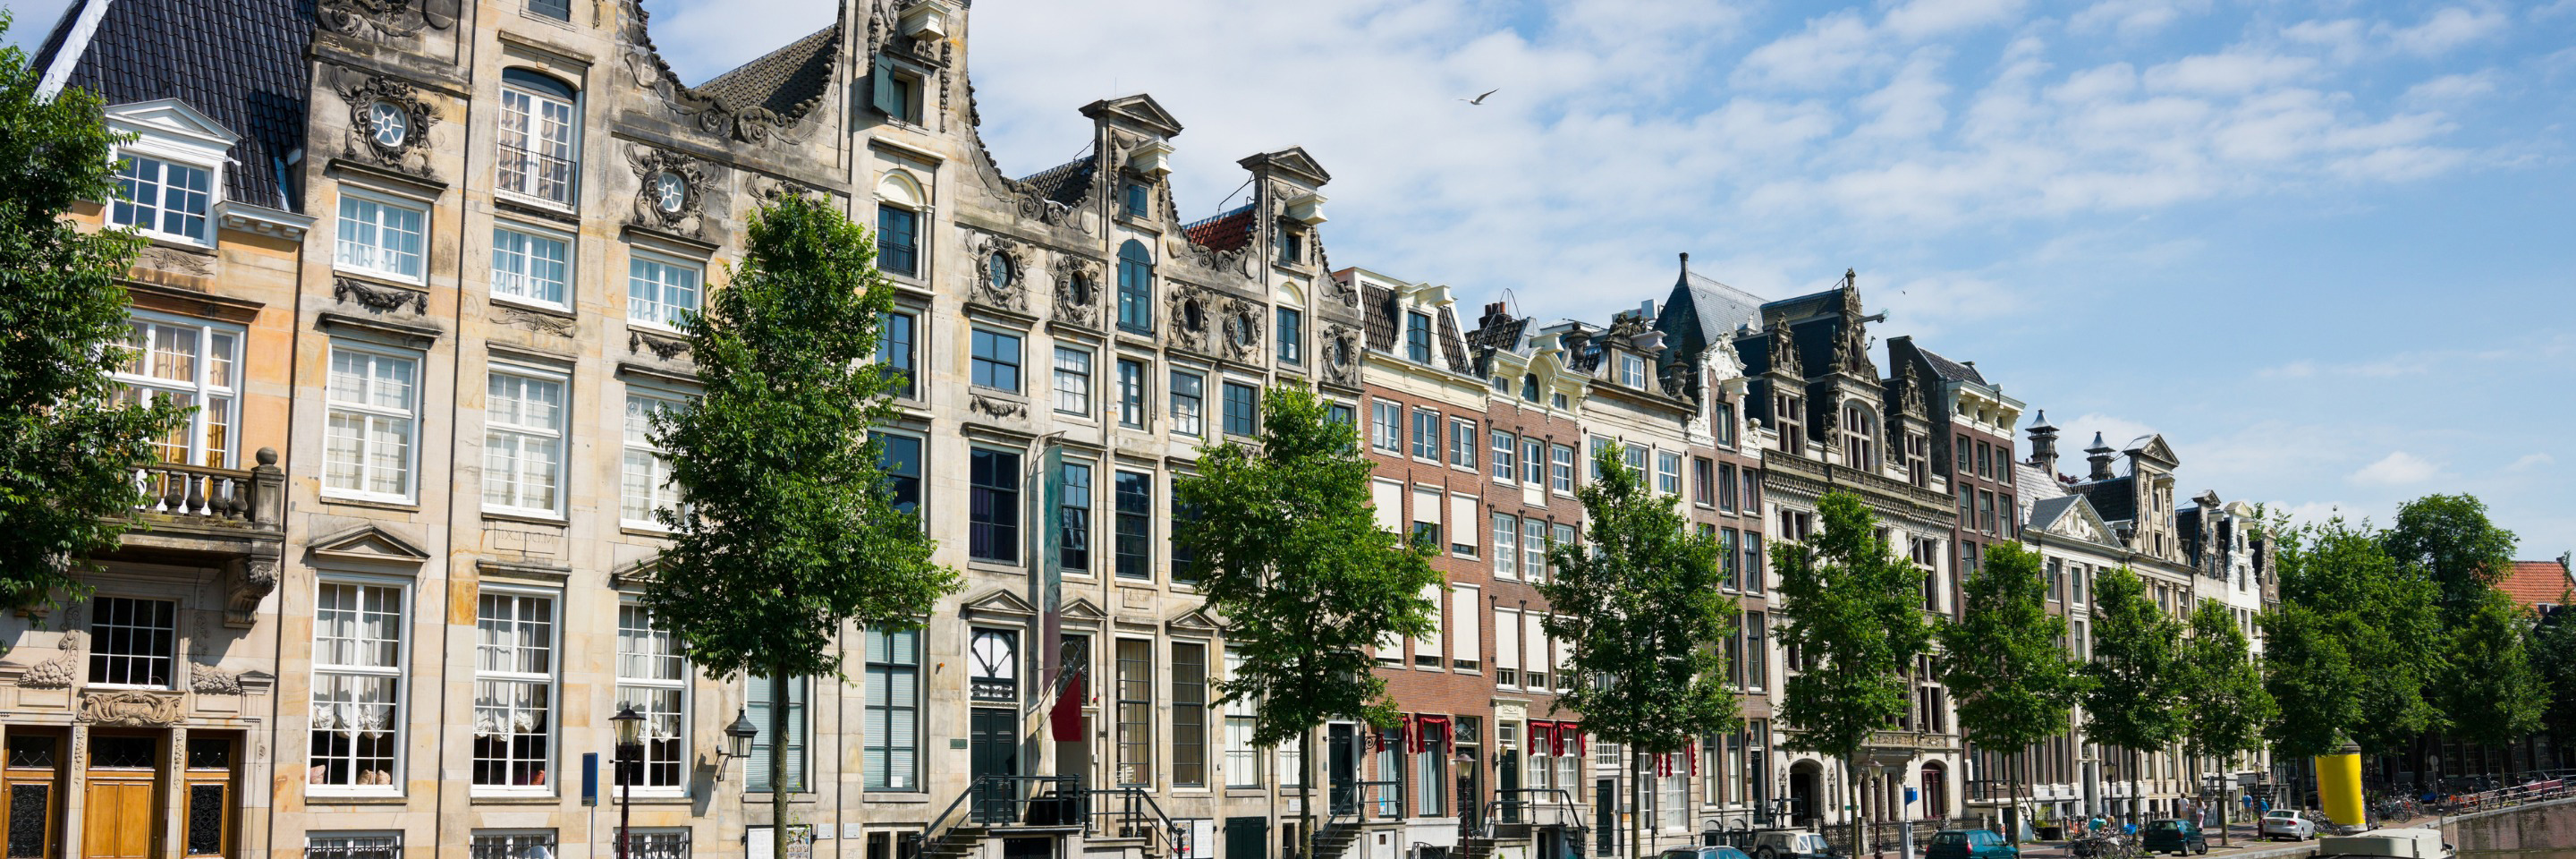 Rhine & Rhône Revealed with 1 Night in Amsterdam for Wine   Lovers (Southbound)